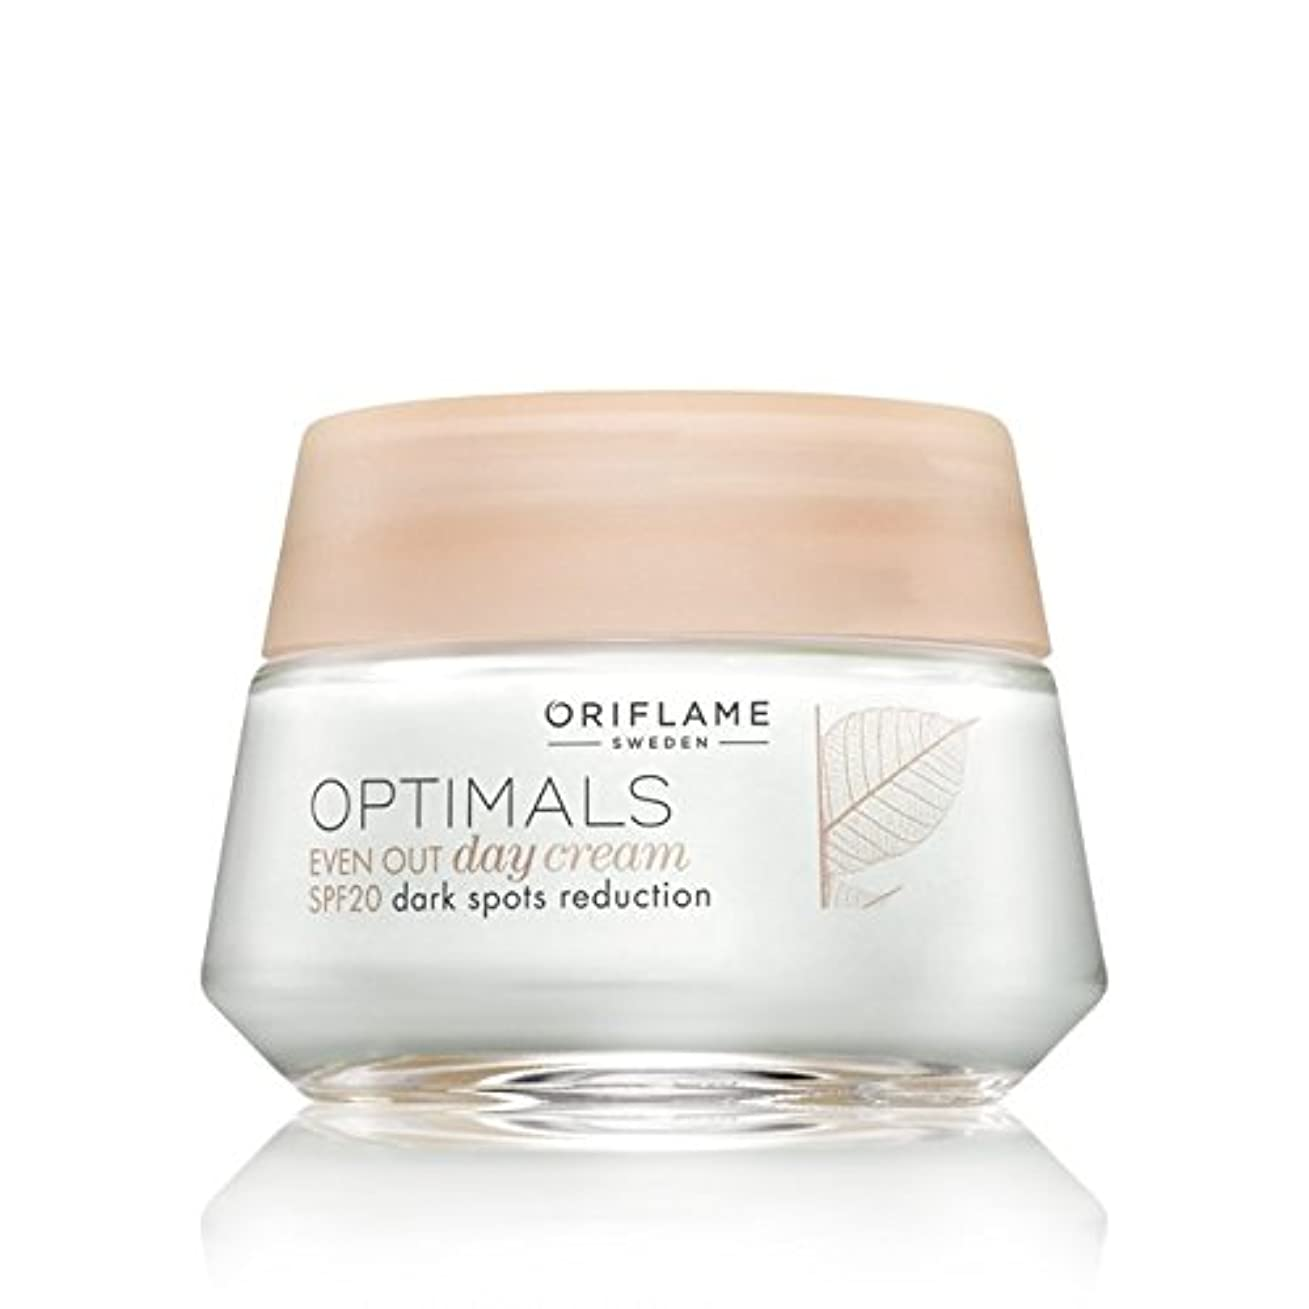 飛行機旅浸漬Oriflame Optimals SPF 20 Dark Spot Reduction Even Out Day Cream, 50ml